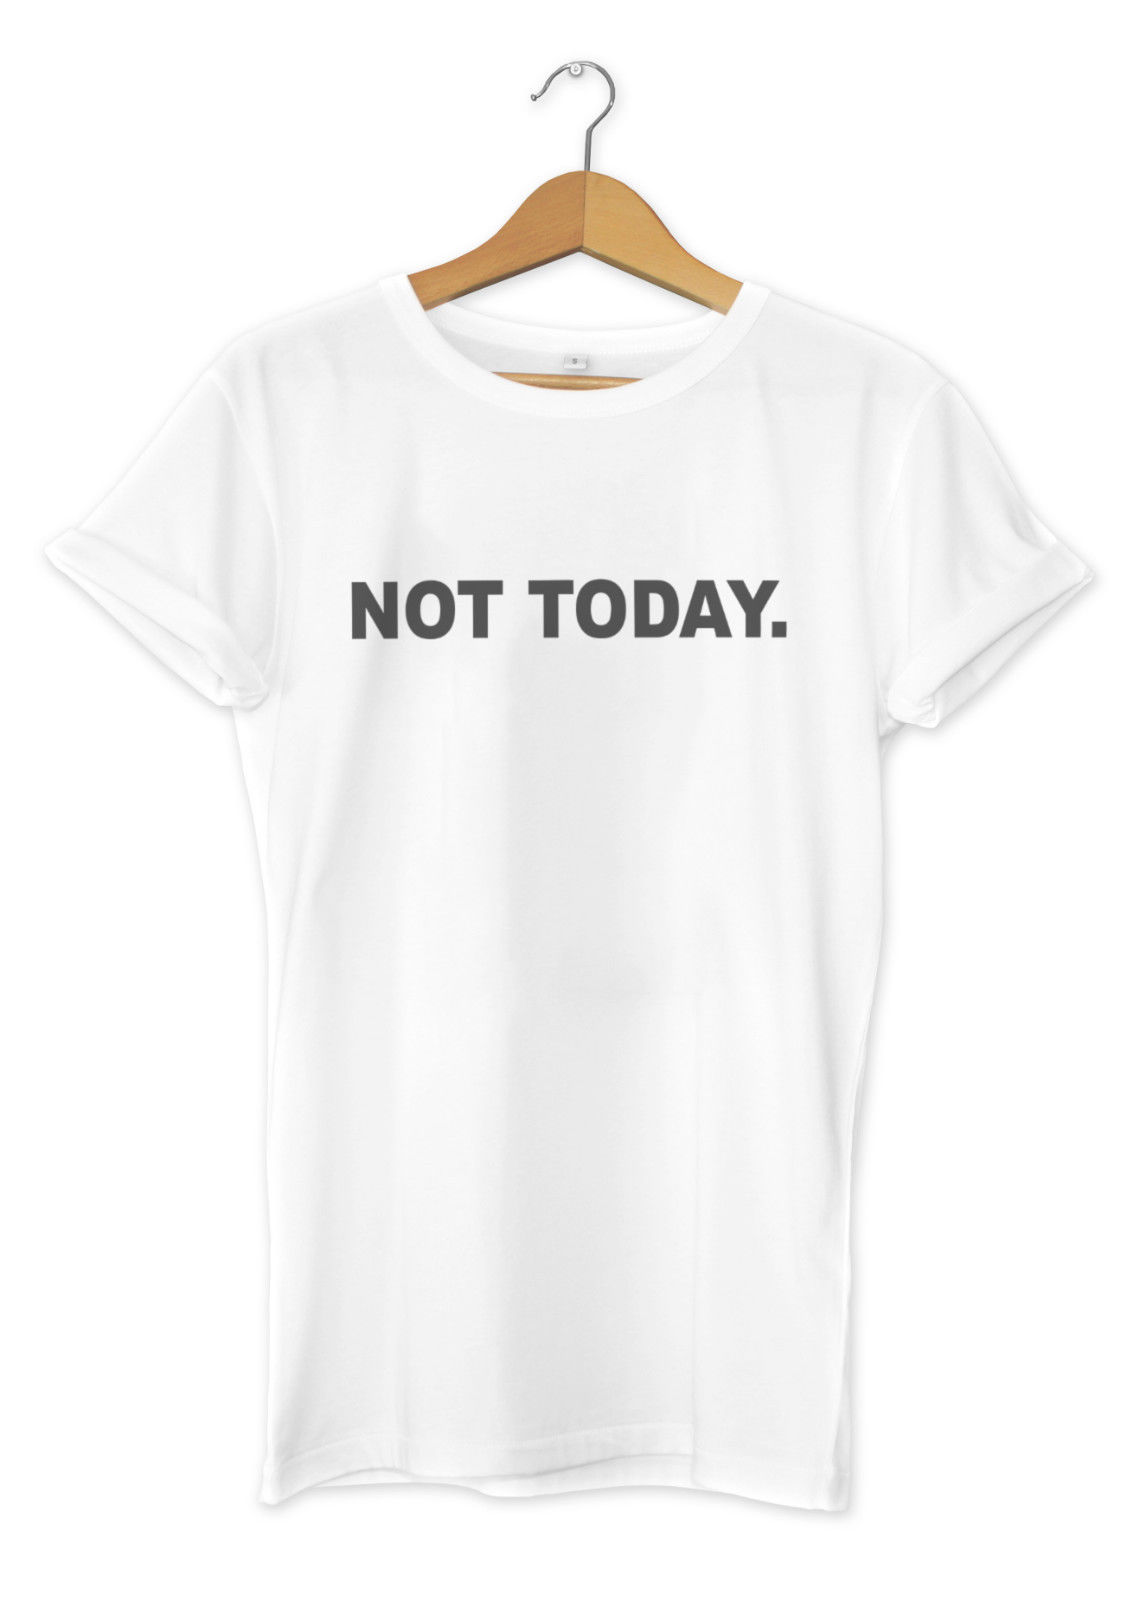 Not Today Printed T Shirt Hipster Print Blogger Design Men Girls Fashion Tee Top New T Shirts Funny Tops free shipping in T Shirts from Men 39 s Clothing